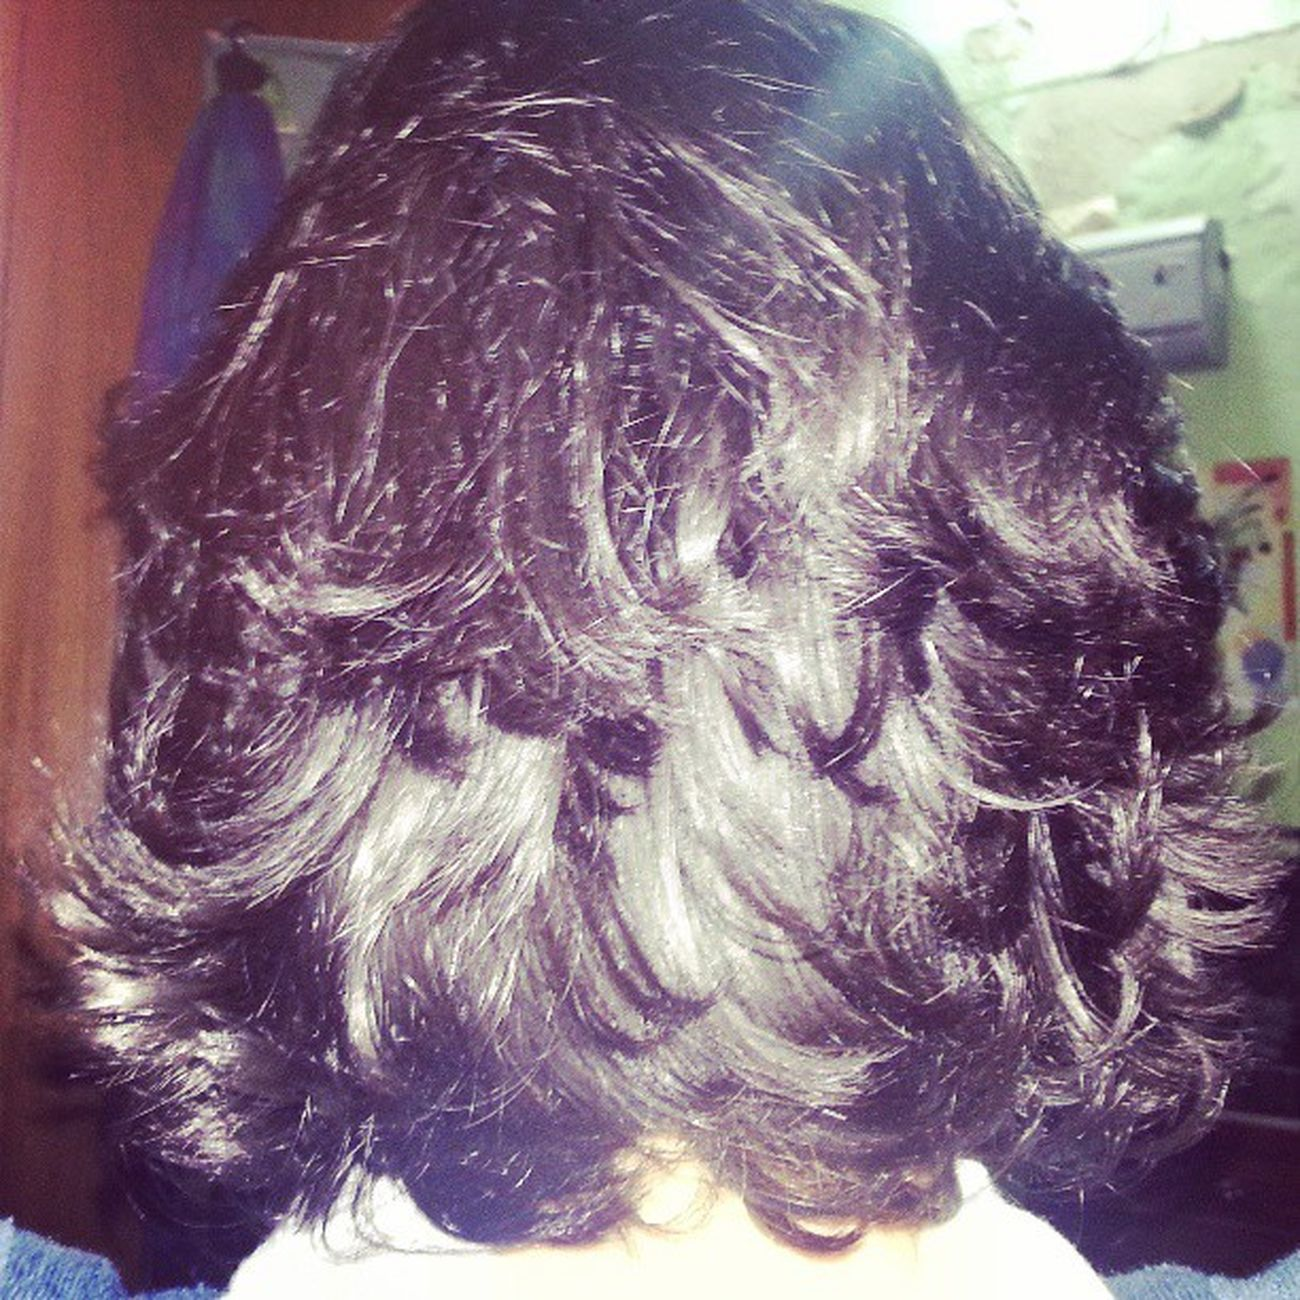 Hhhhhh my hair month ago